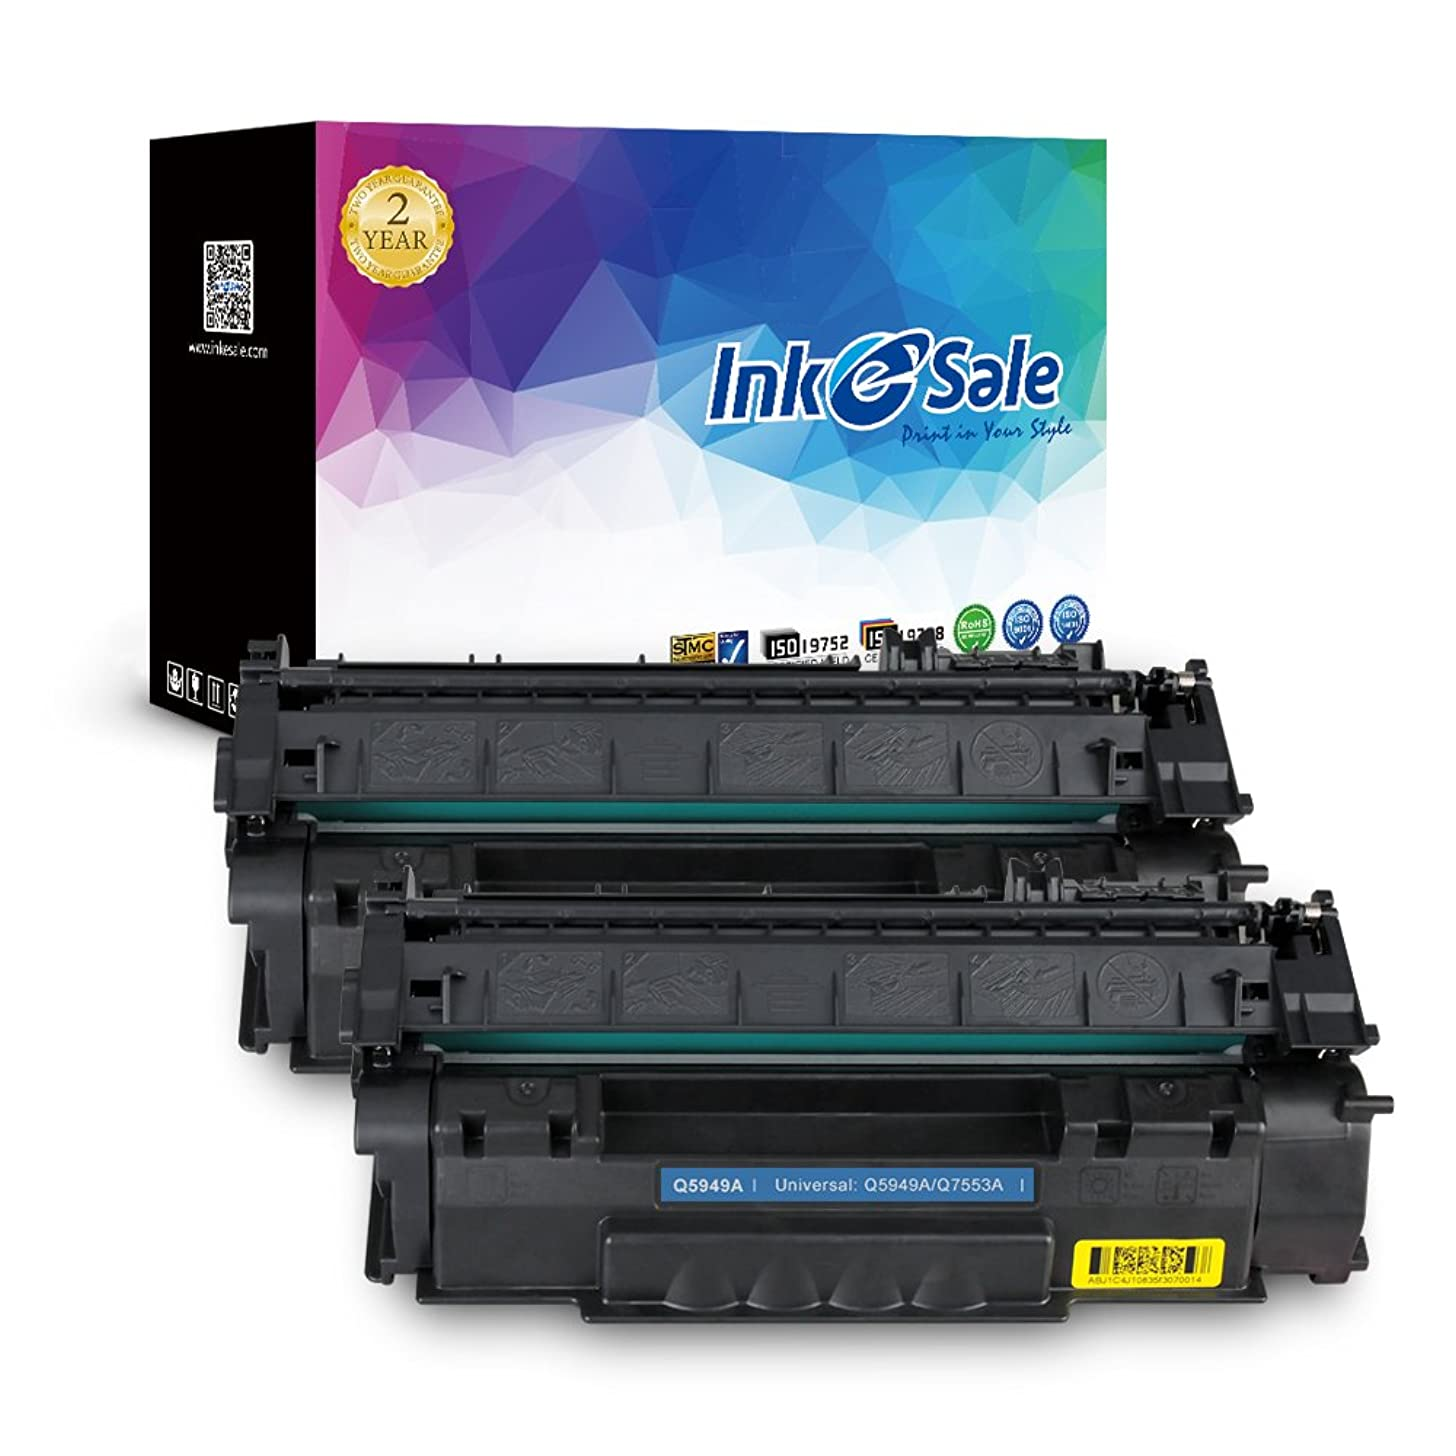 INK E-SALE New Compatible Toner Cartridge Replacement for HP 53A Q7553A 49A Q5949A, for use with HP LaserJet 1320 1320n 3390 P2015 P2015d P2015dn P2014 M2727 M2727nf MFP Printer Series (Black, 2 Pack)